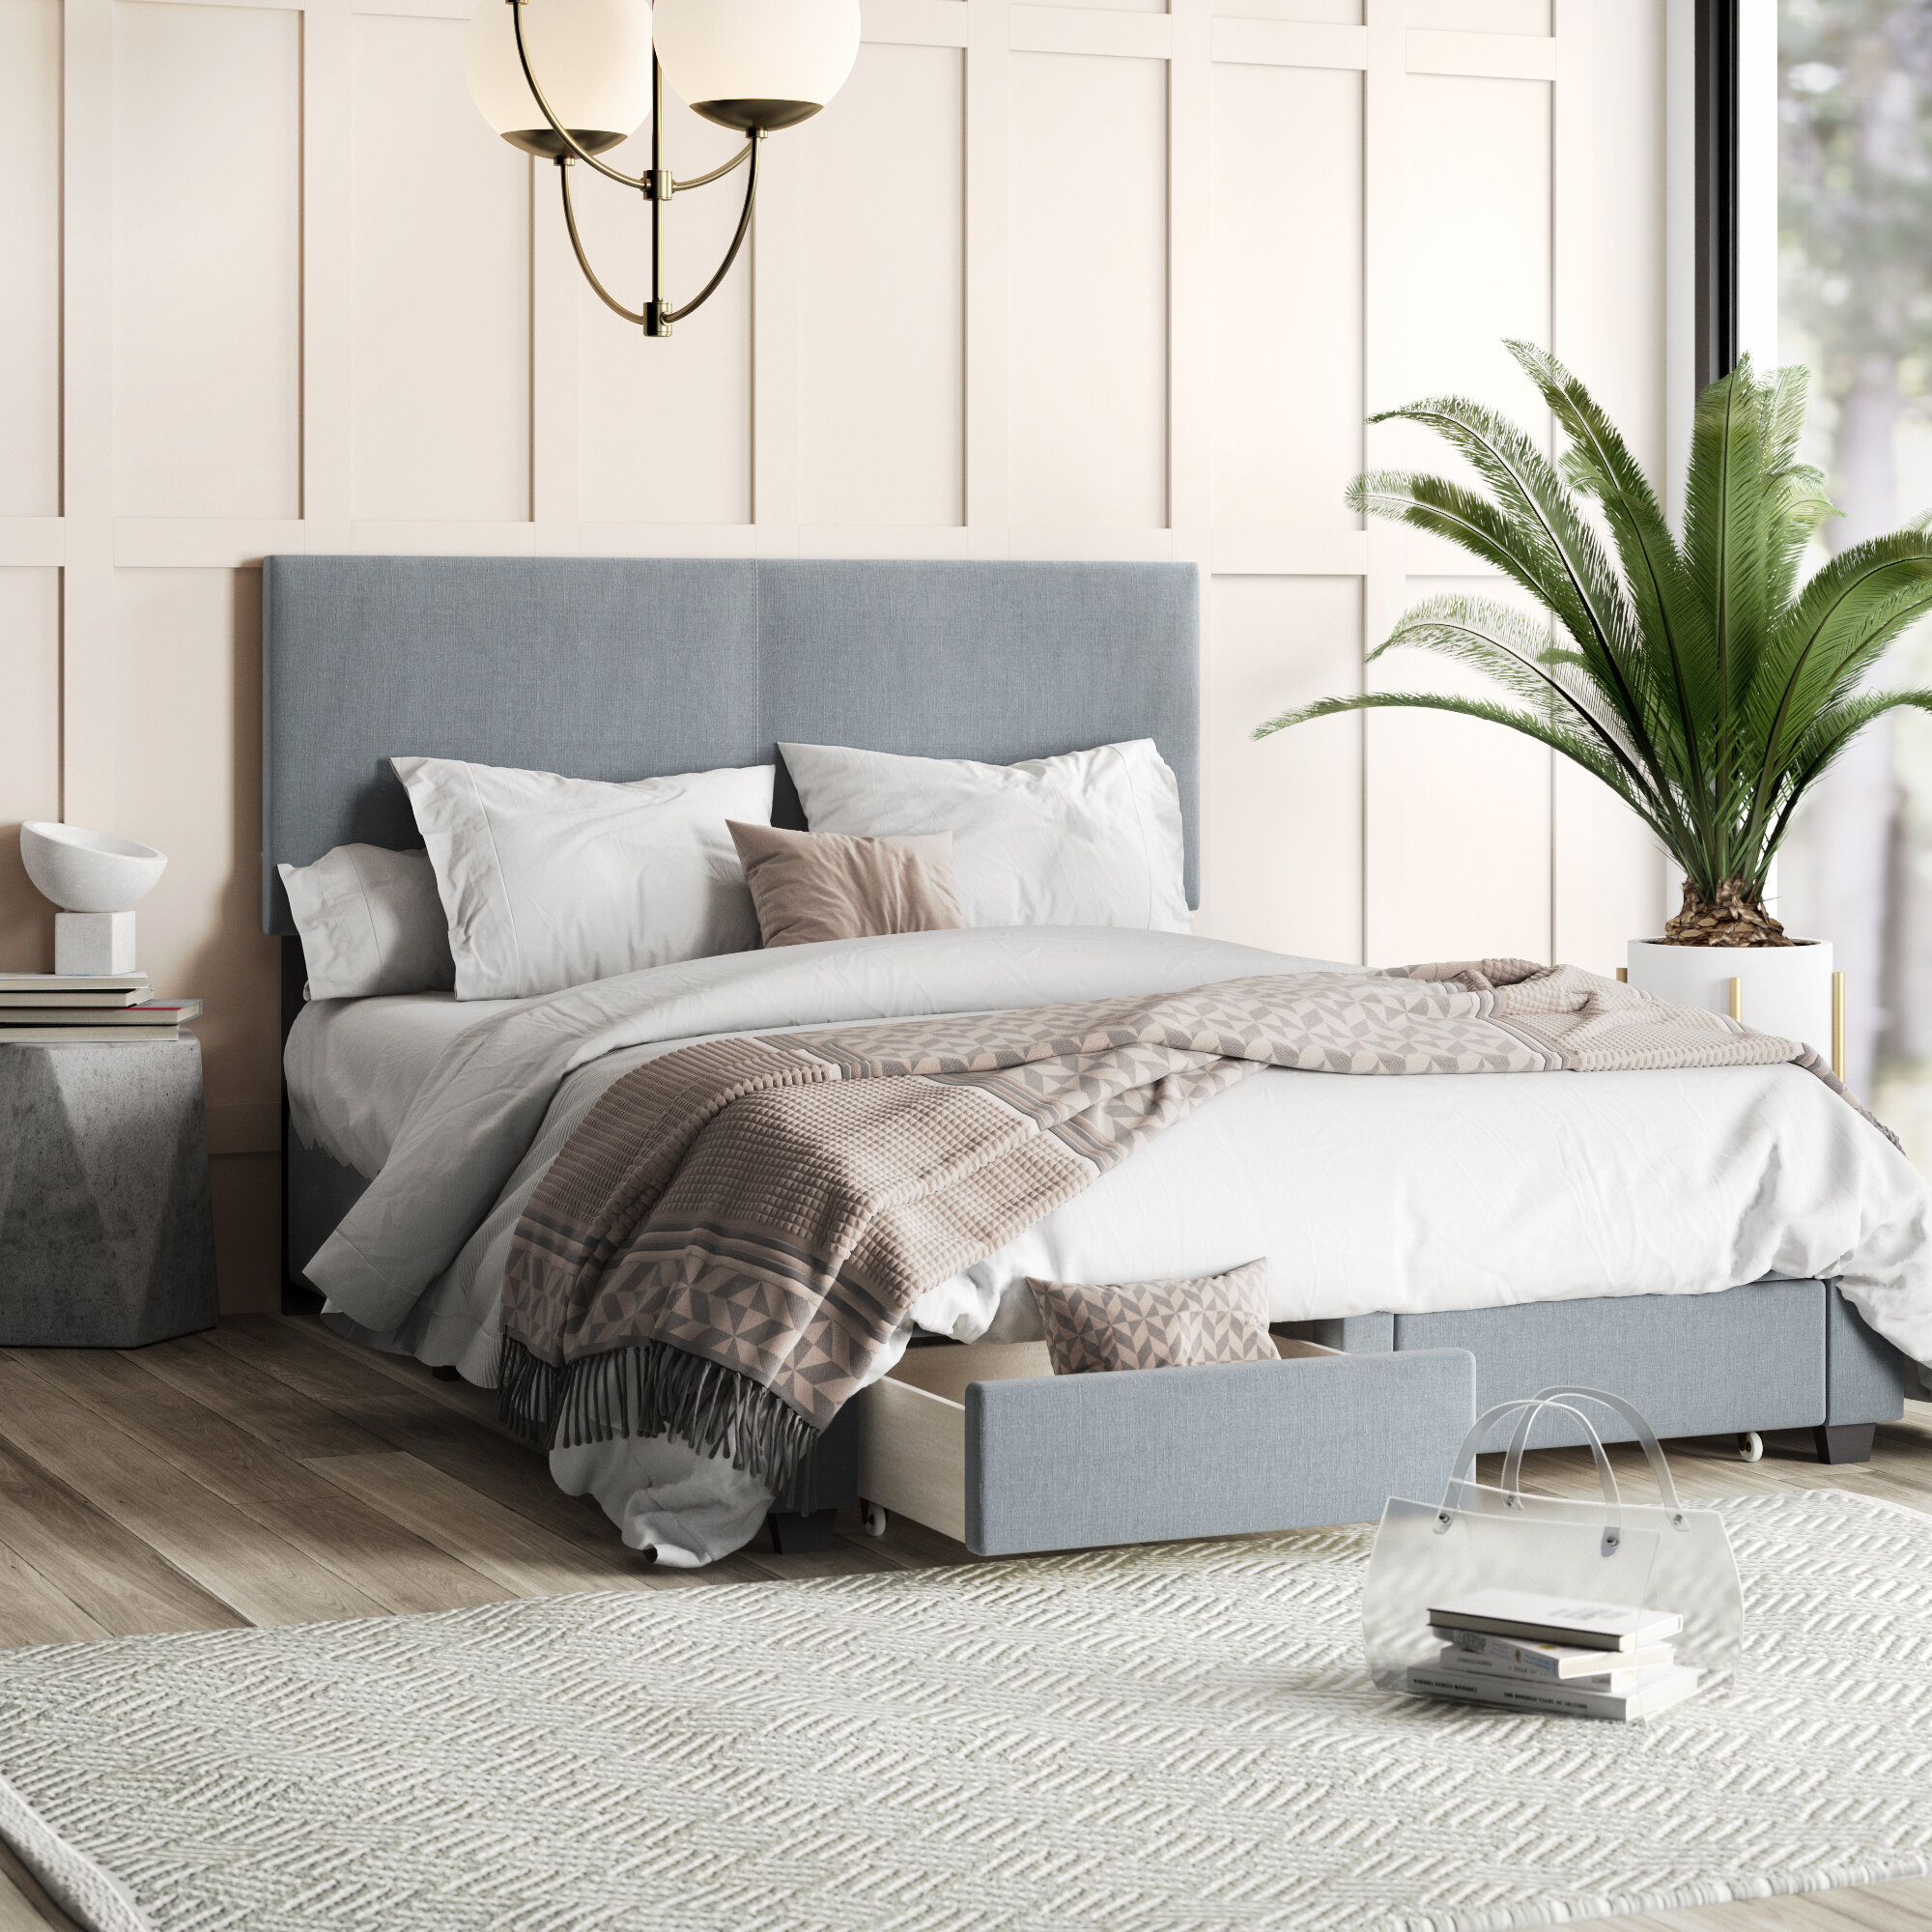 Peachy Colwell Upholstered Storage Standard Bed Caraccident5 Cool Chair Designs And Ideas Caraccident5Info